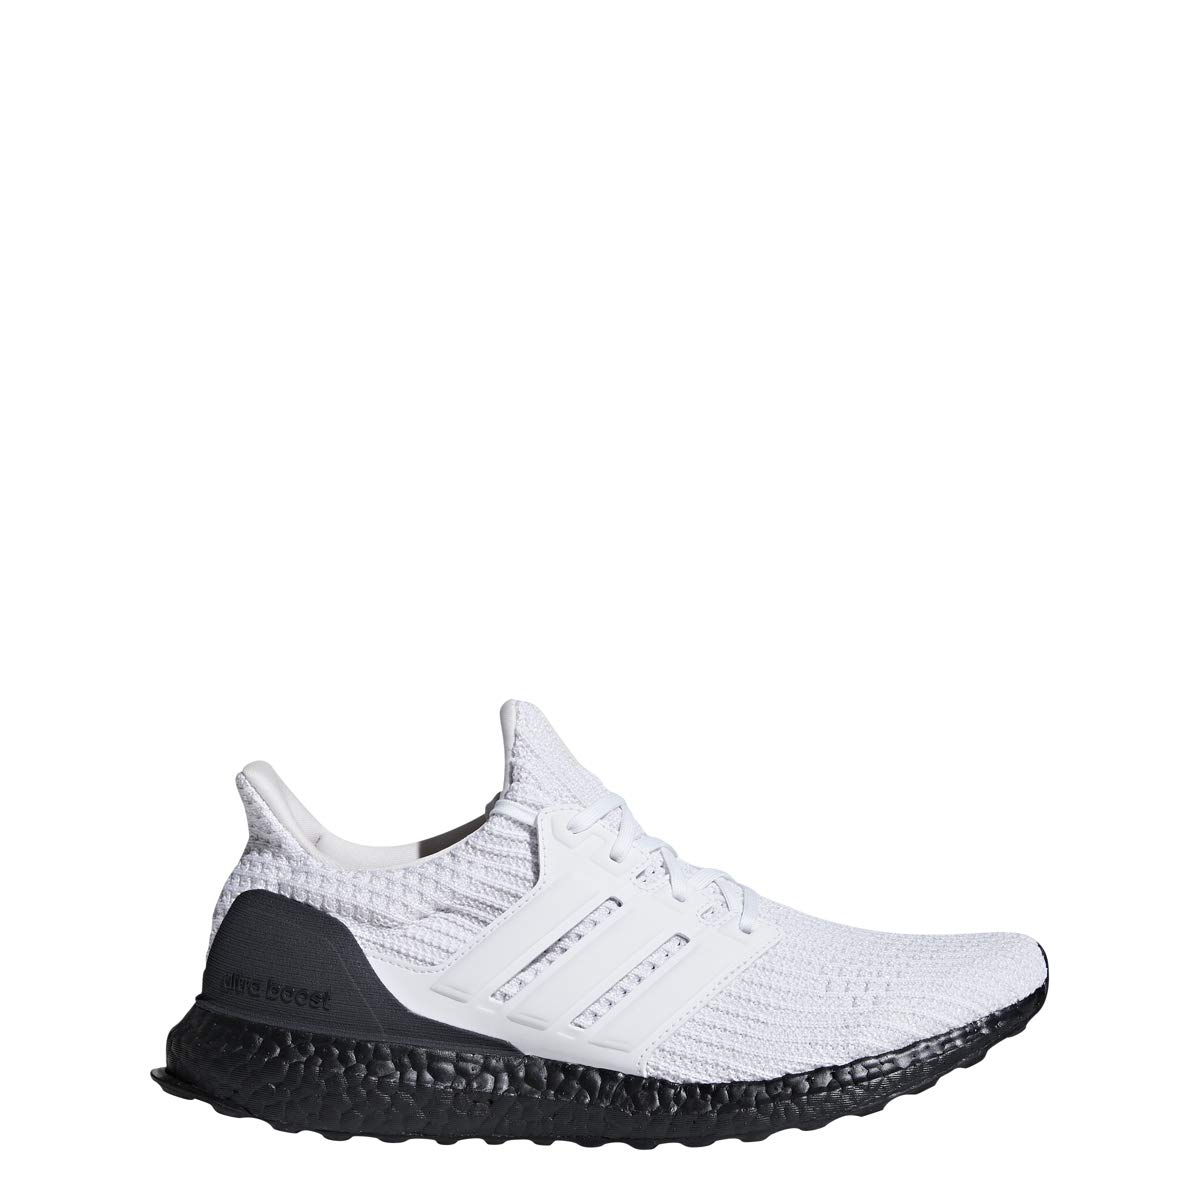 adidas Men's Ultraboost, Orchid Tint/White/Black, 10 M US by adidas (Image #1)